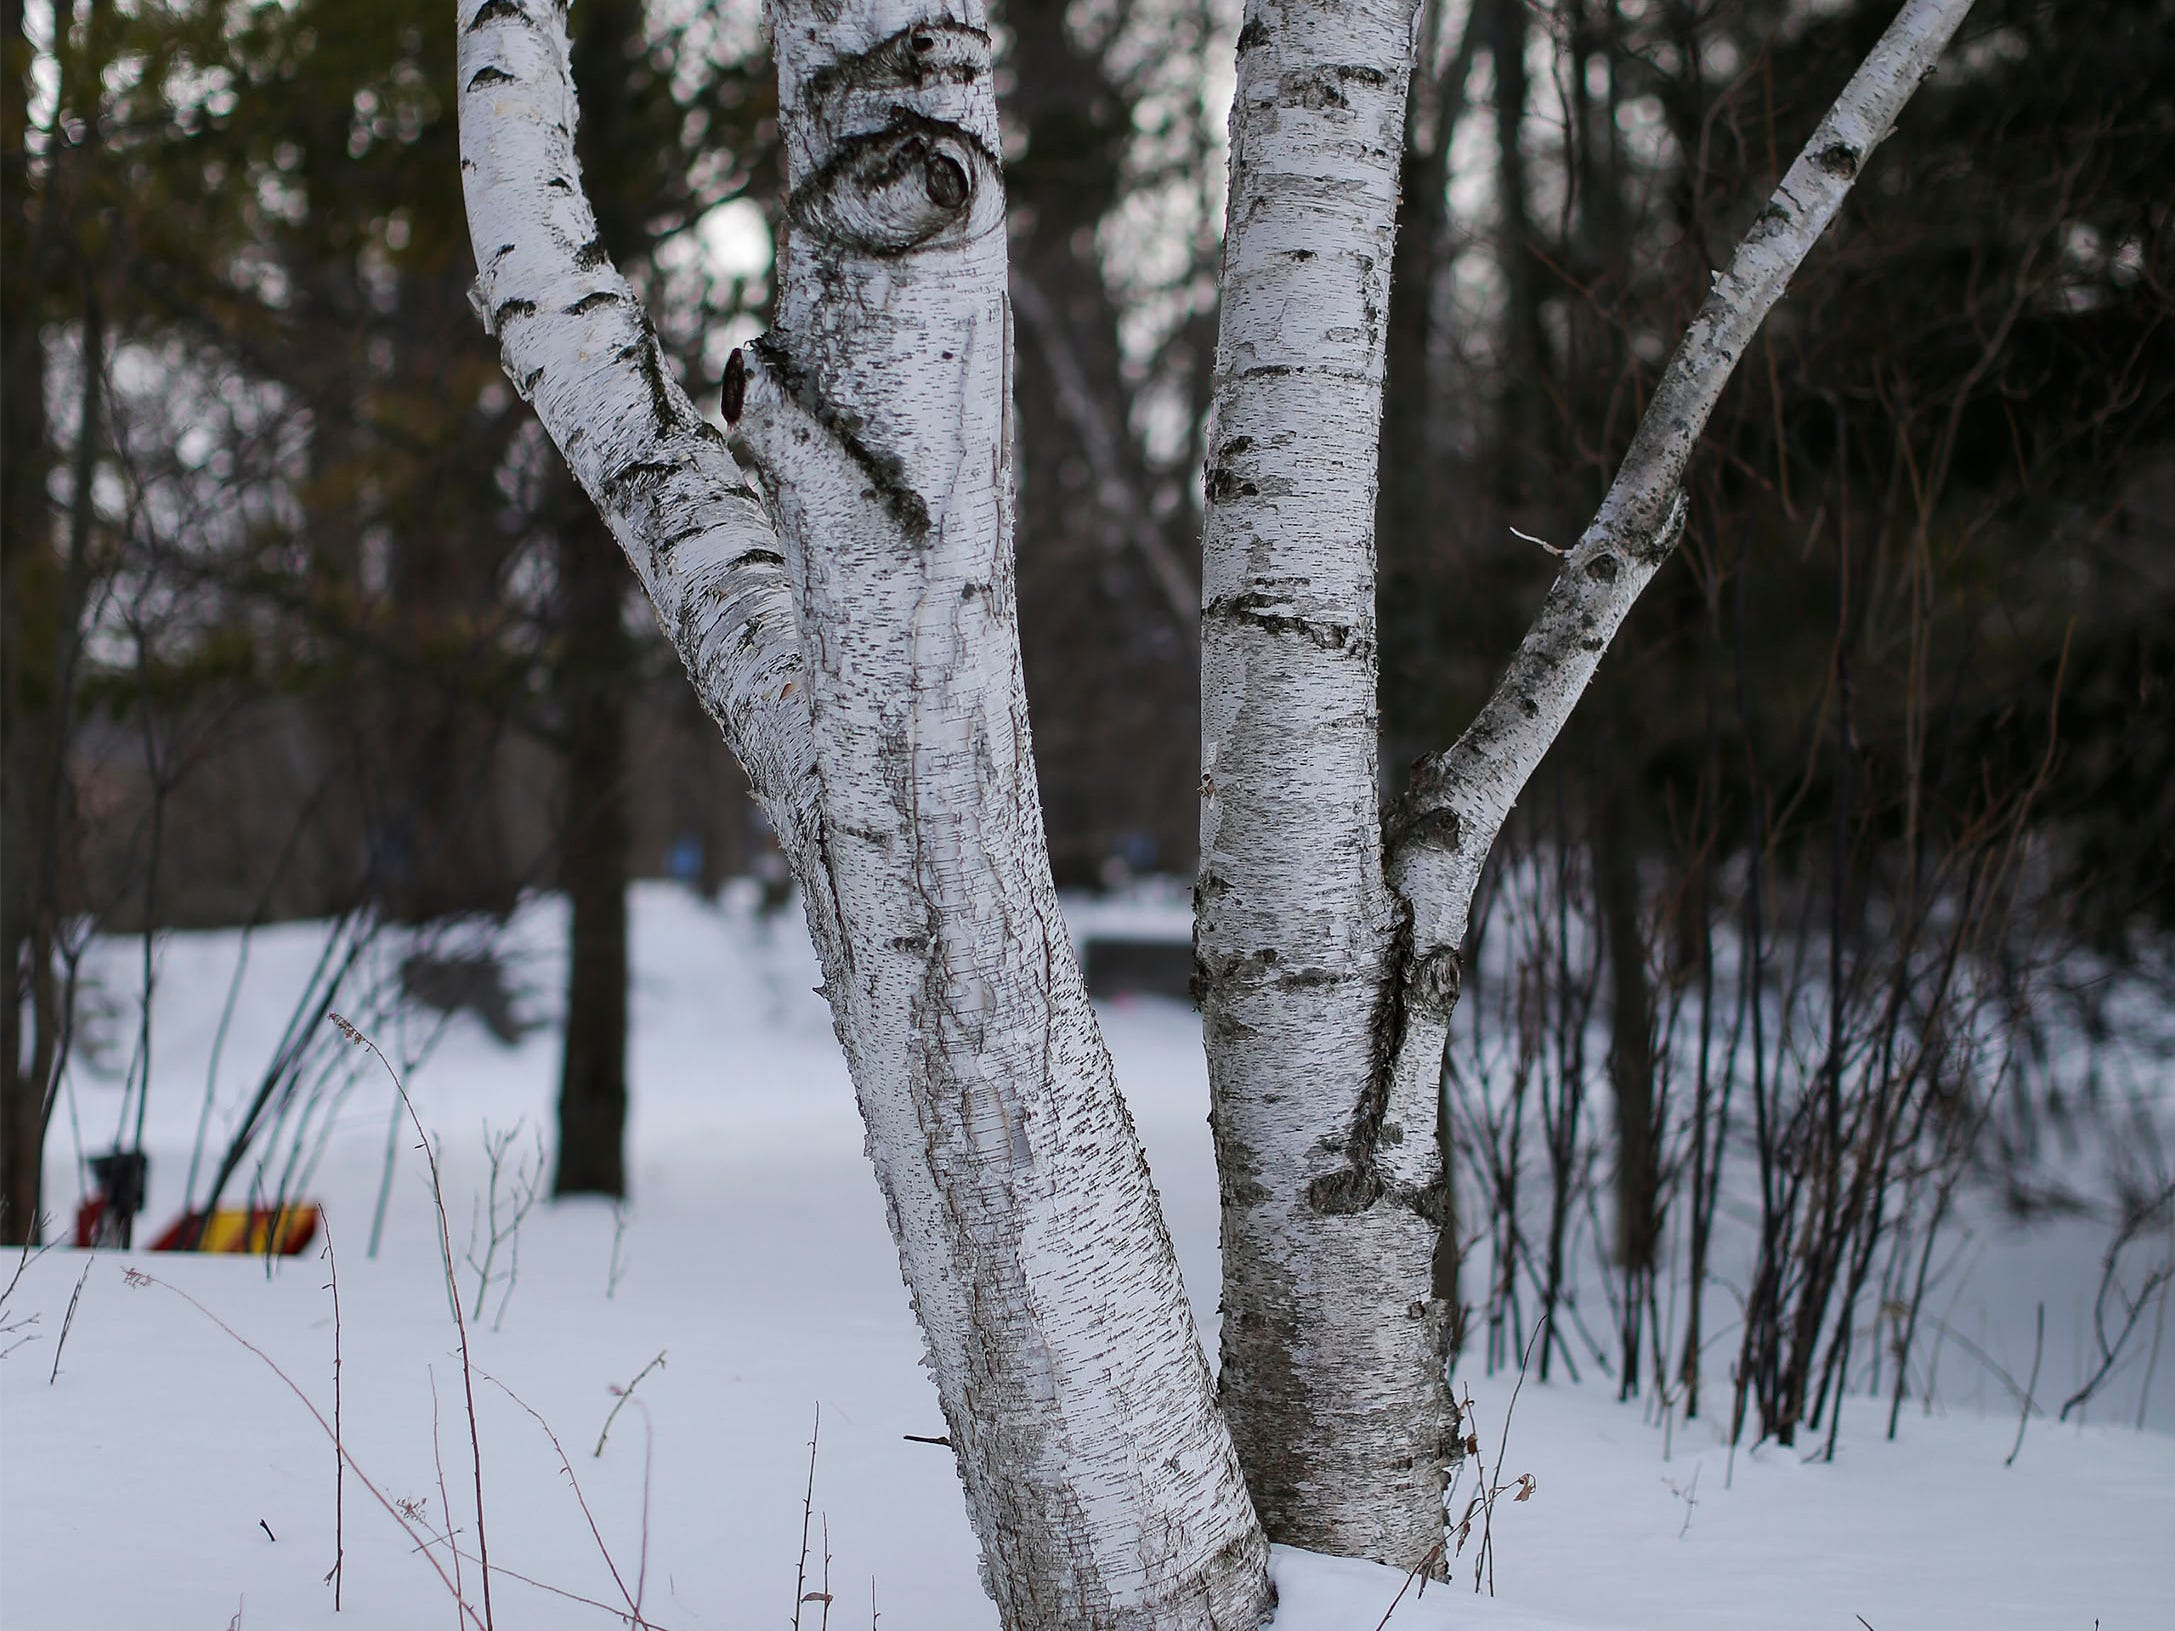 A birch tree's bark compliments the white snow at the Ellwood H. May Environmental Park, Tuesday, March 5, 2019, in Sheboygan, Wis.